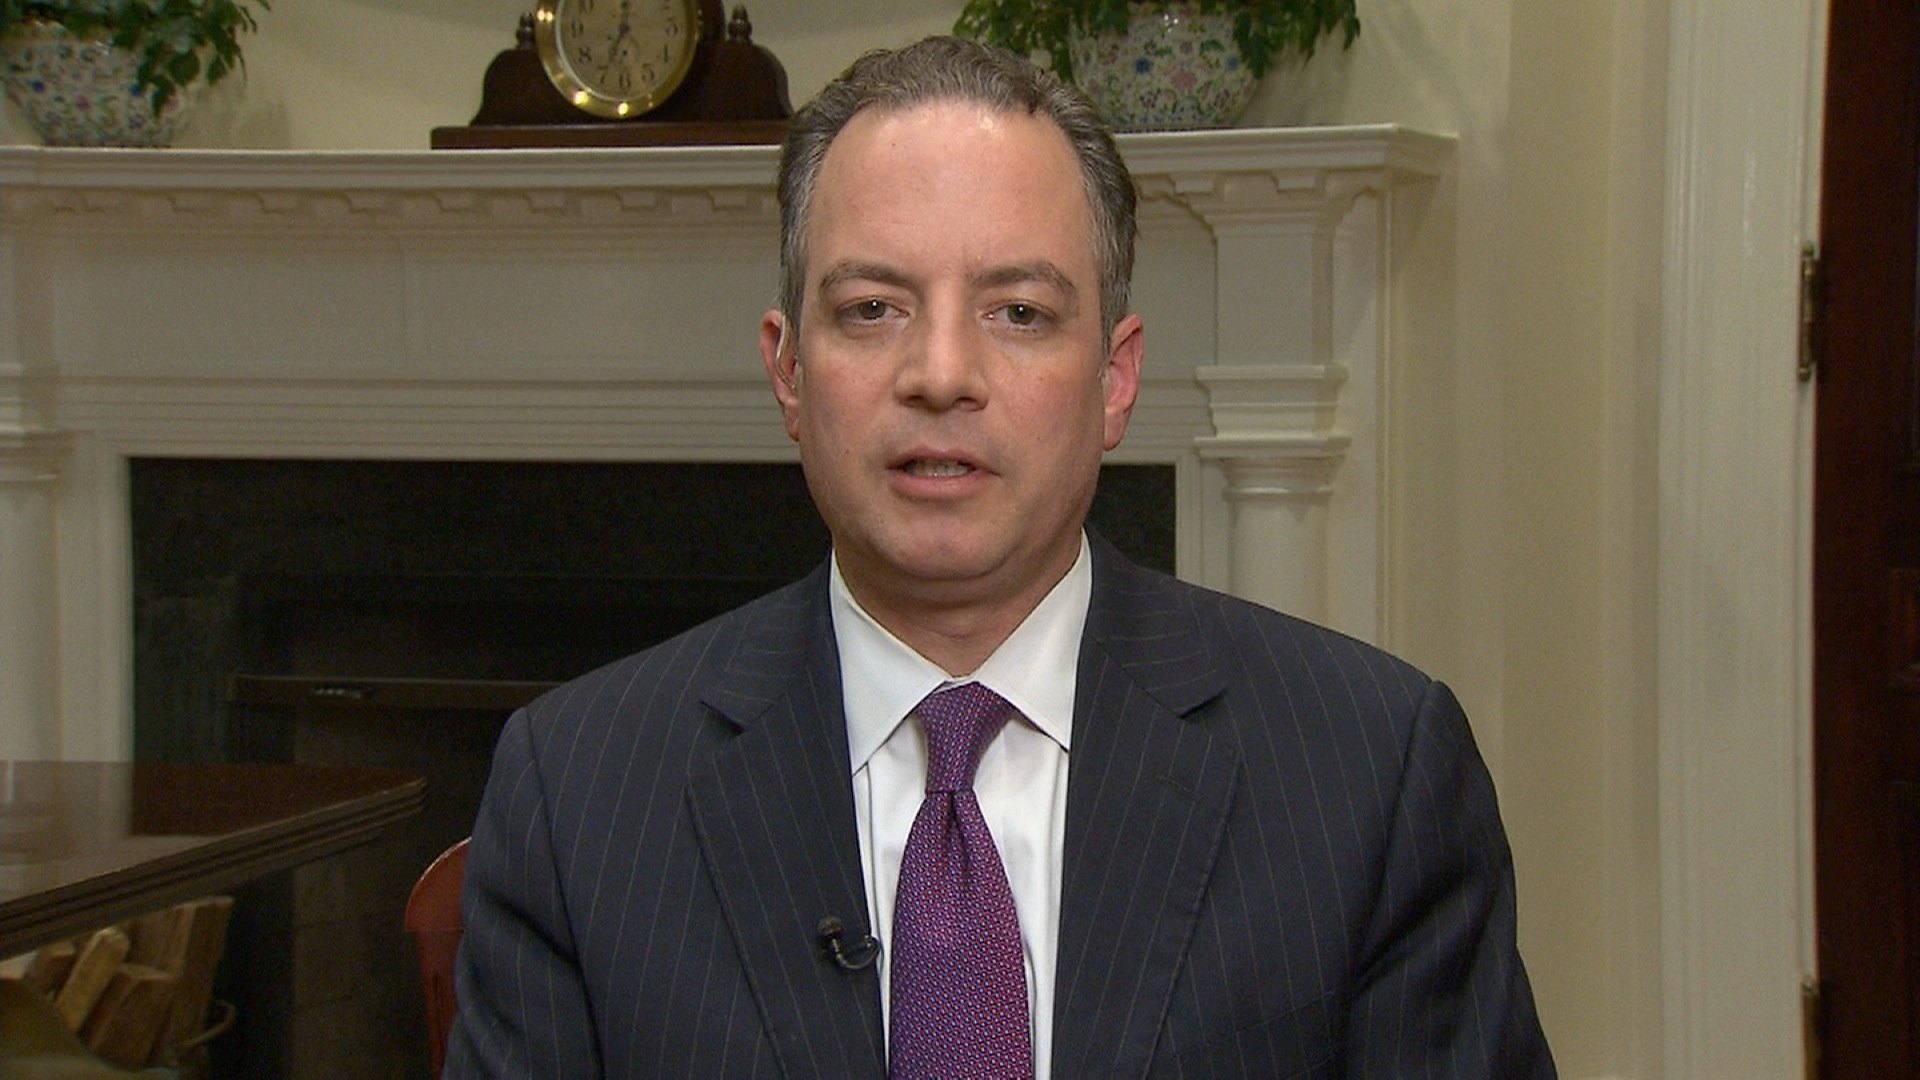 Donald Trump SACKS White House Chief of Staff Reince Priebus